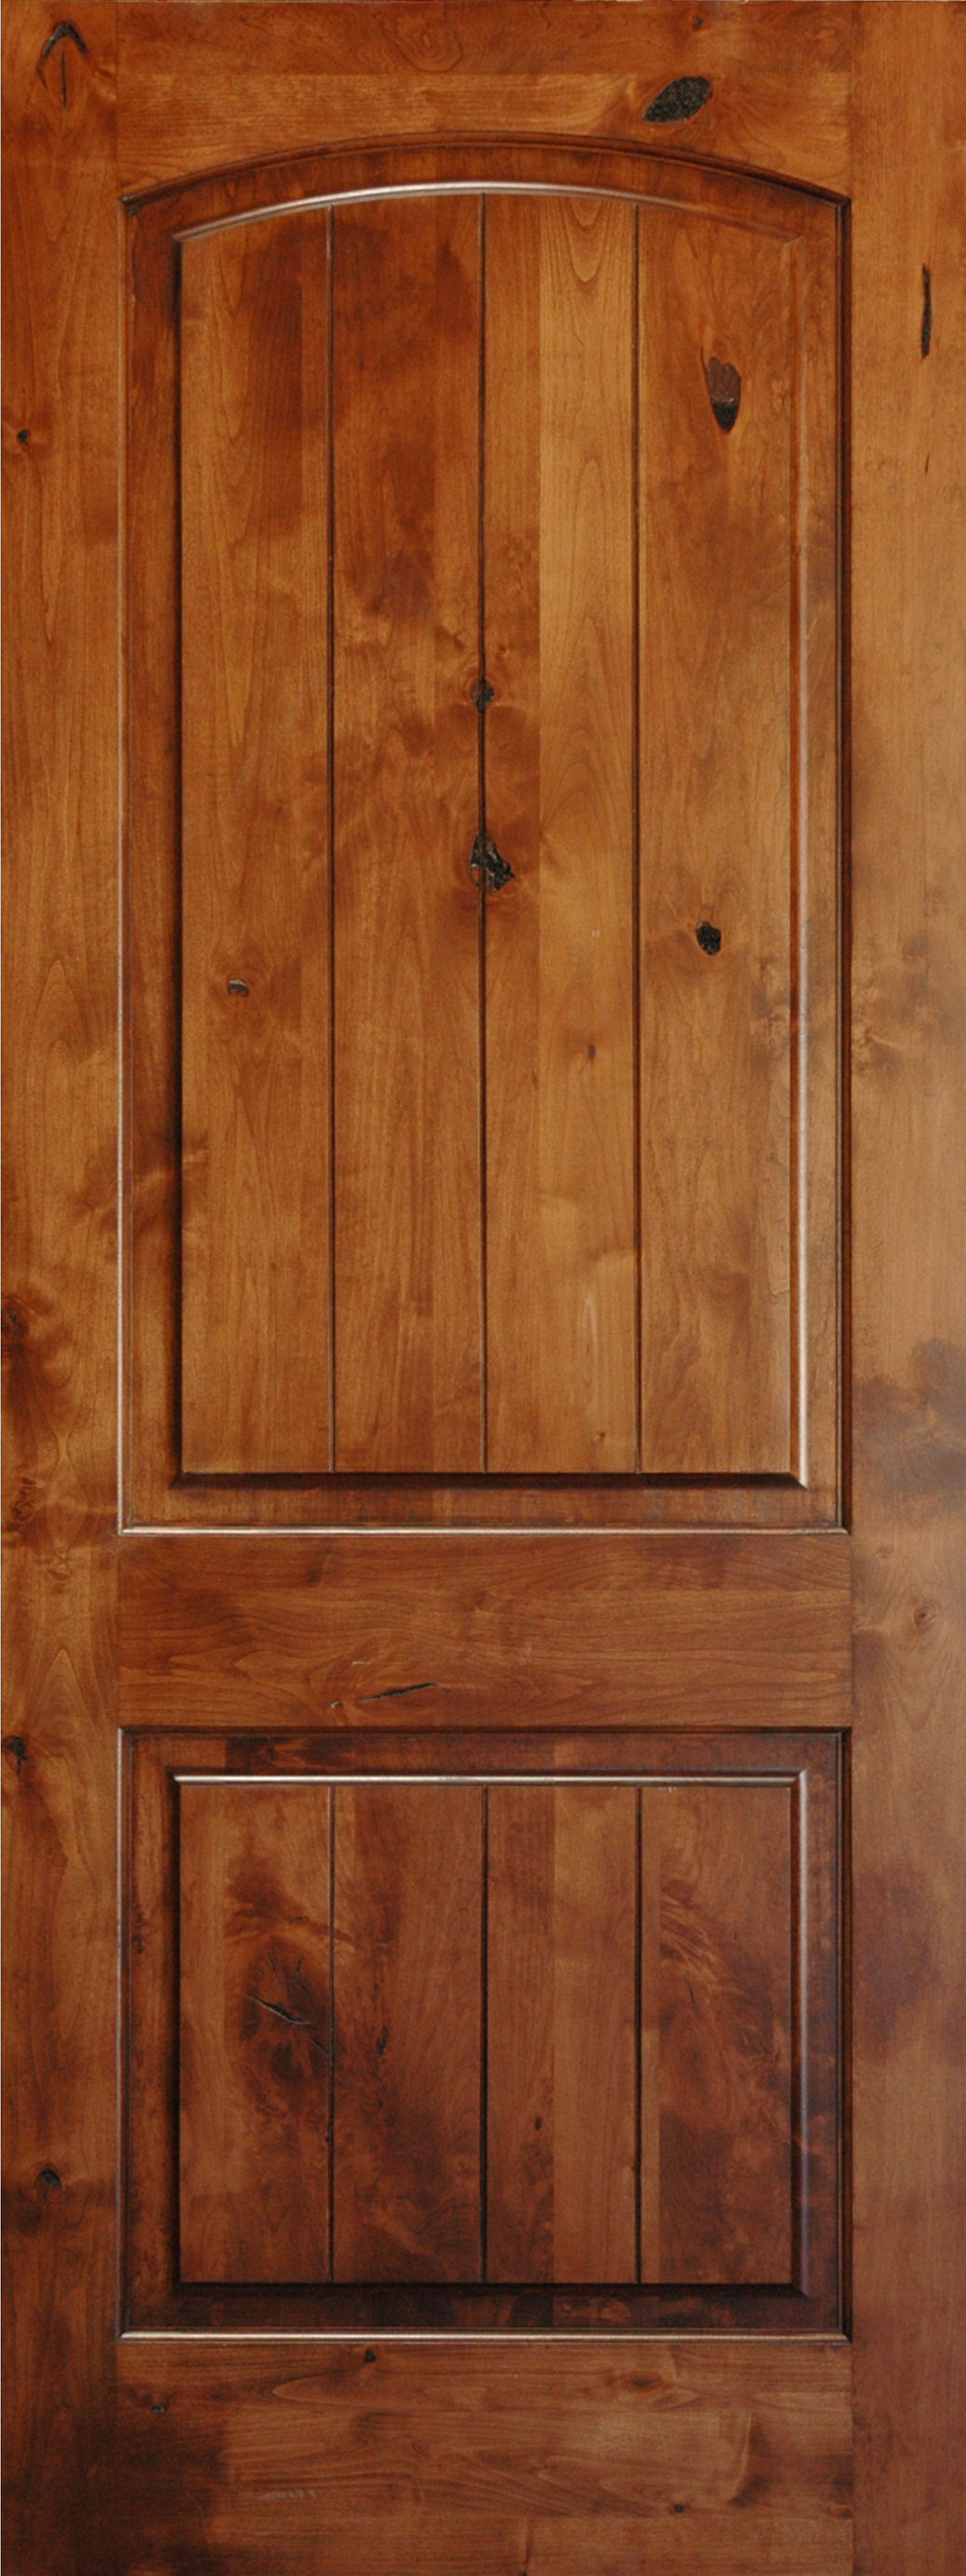 Knotty alder 8 39 v groove arch 2 panel wood interior doors for Hardwood interior doors